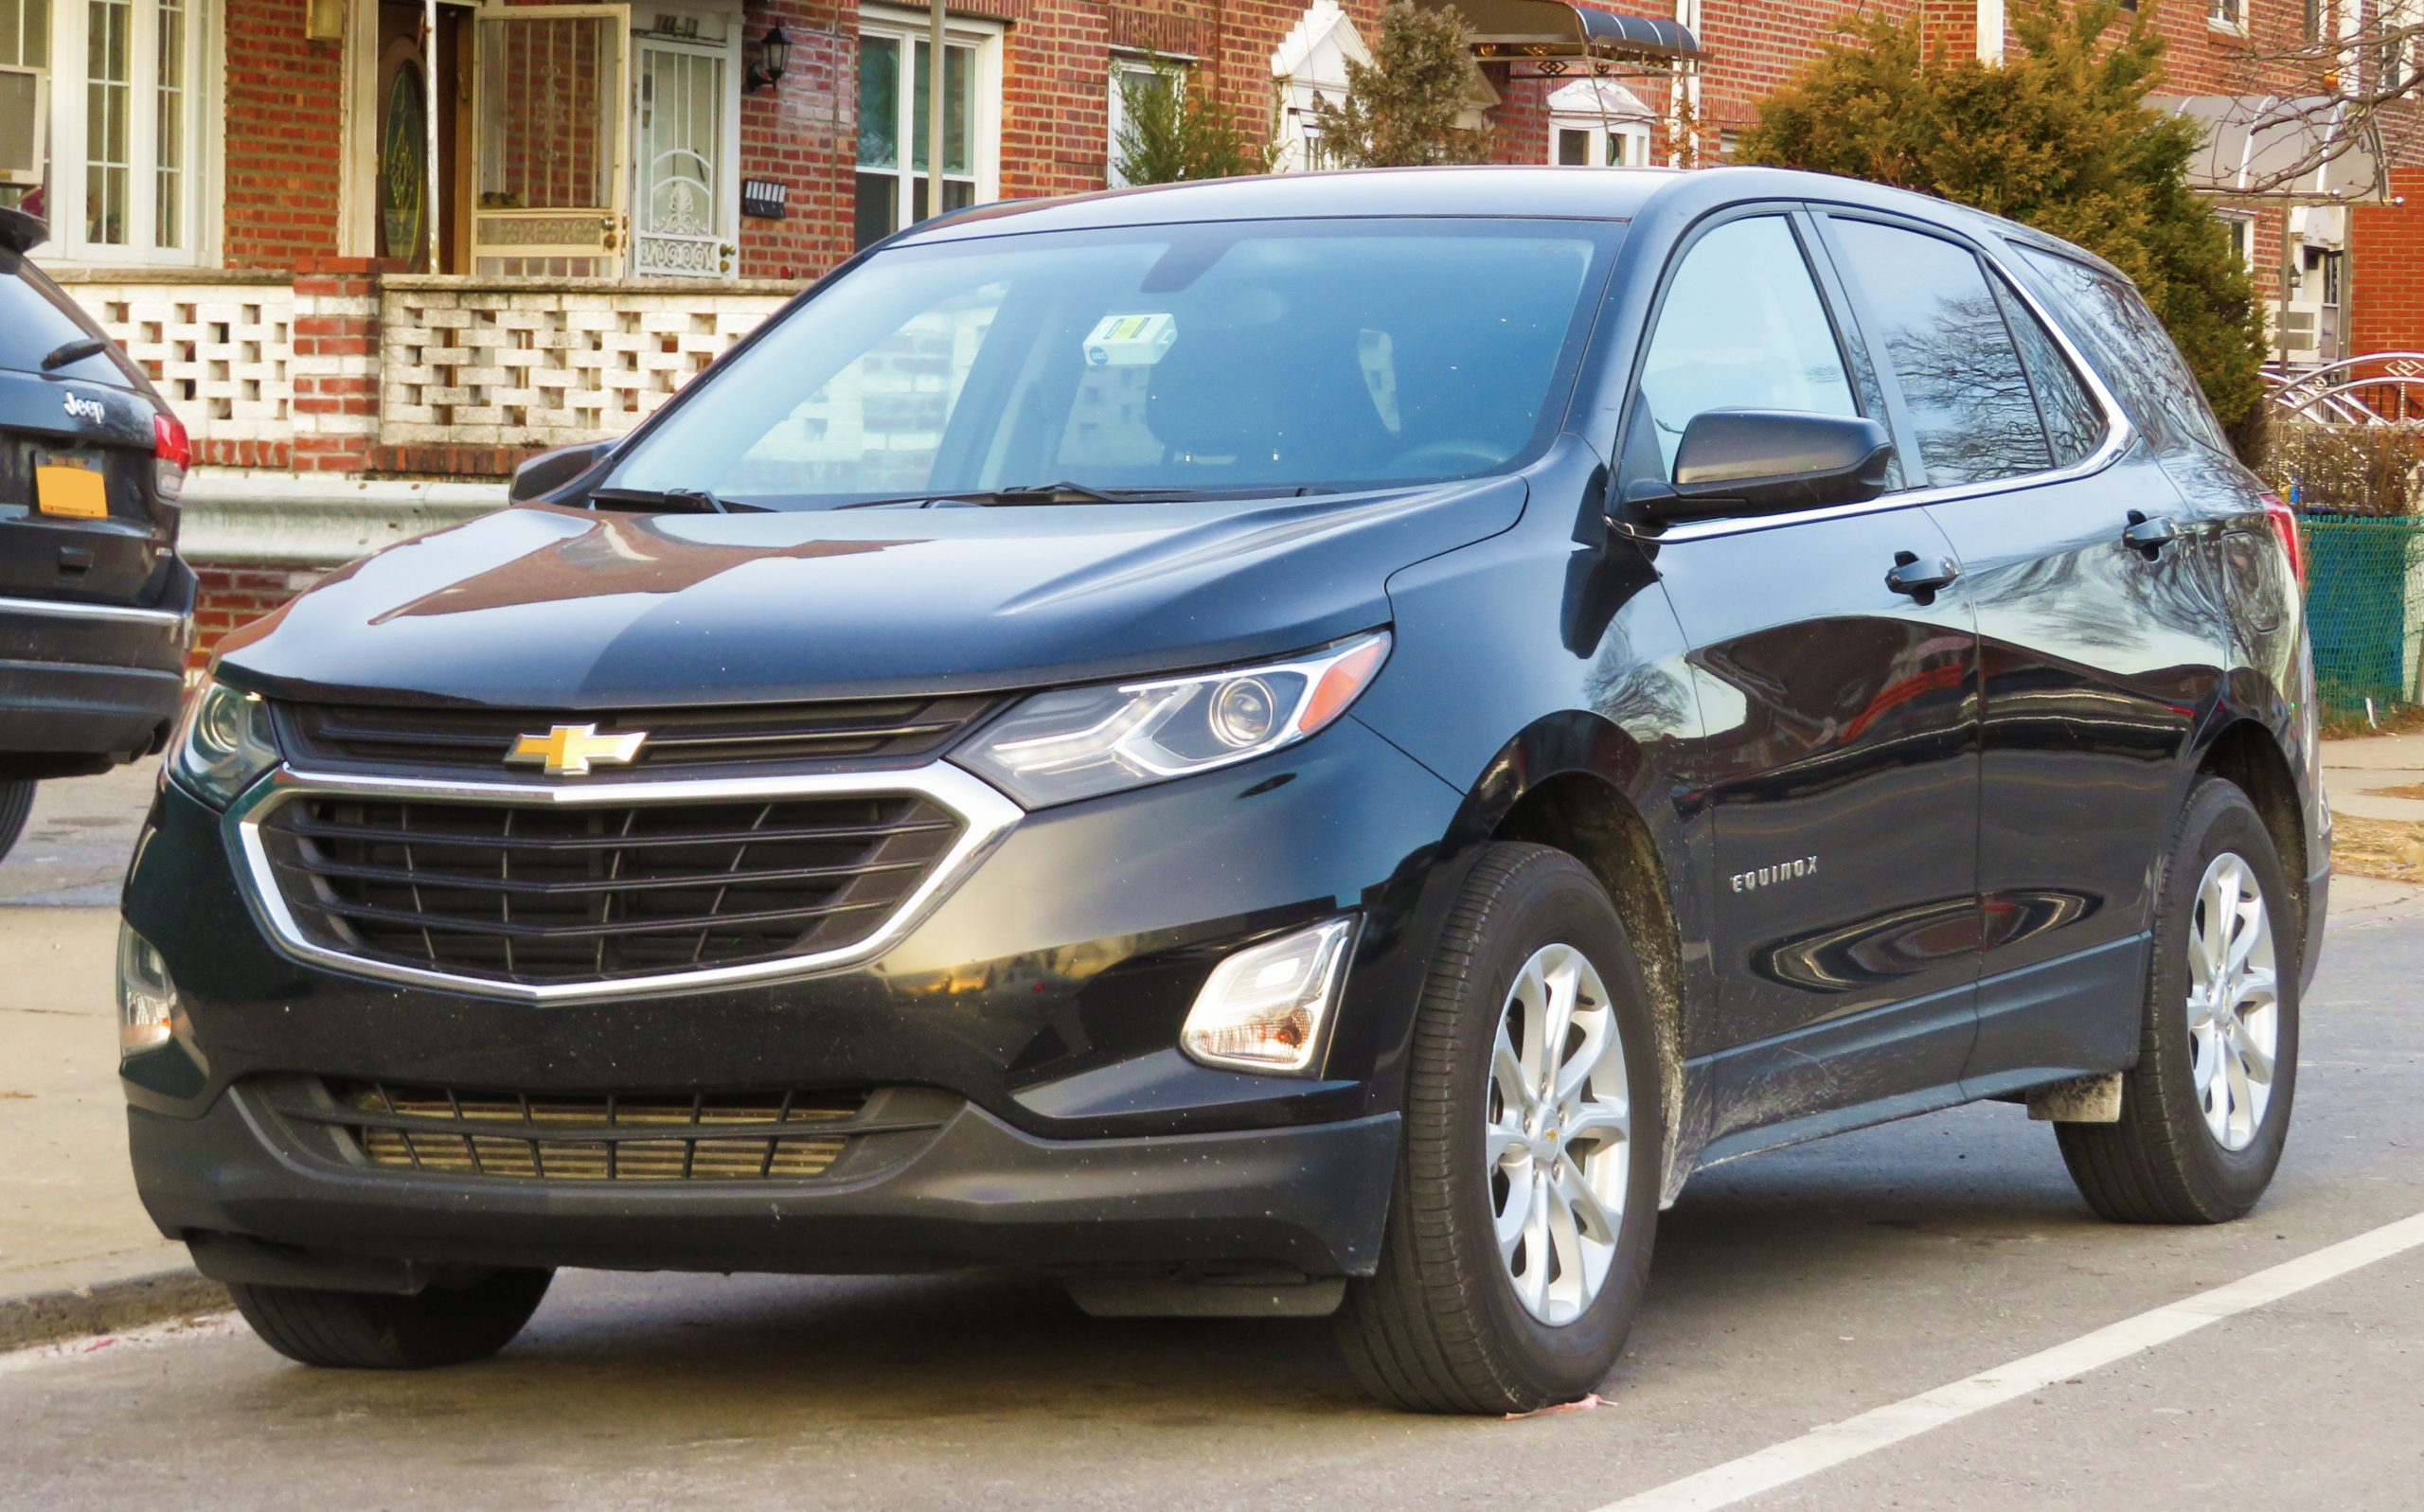 Chevrolet Equinox - Wikipedia 2021 Chevrolet Equinox Base Model, Curb Weight, Cargo Space